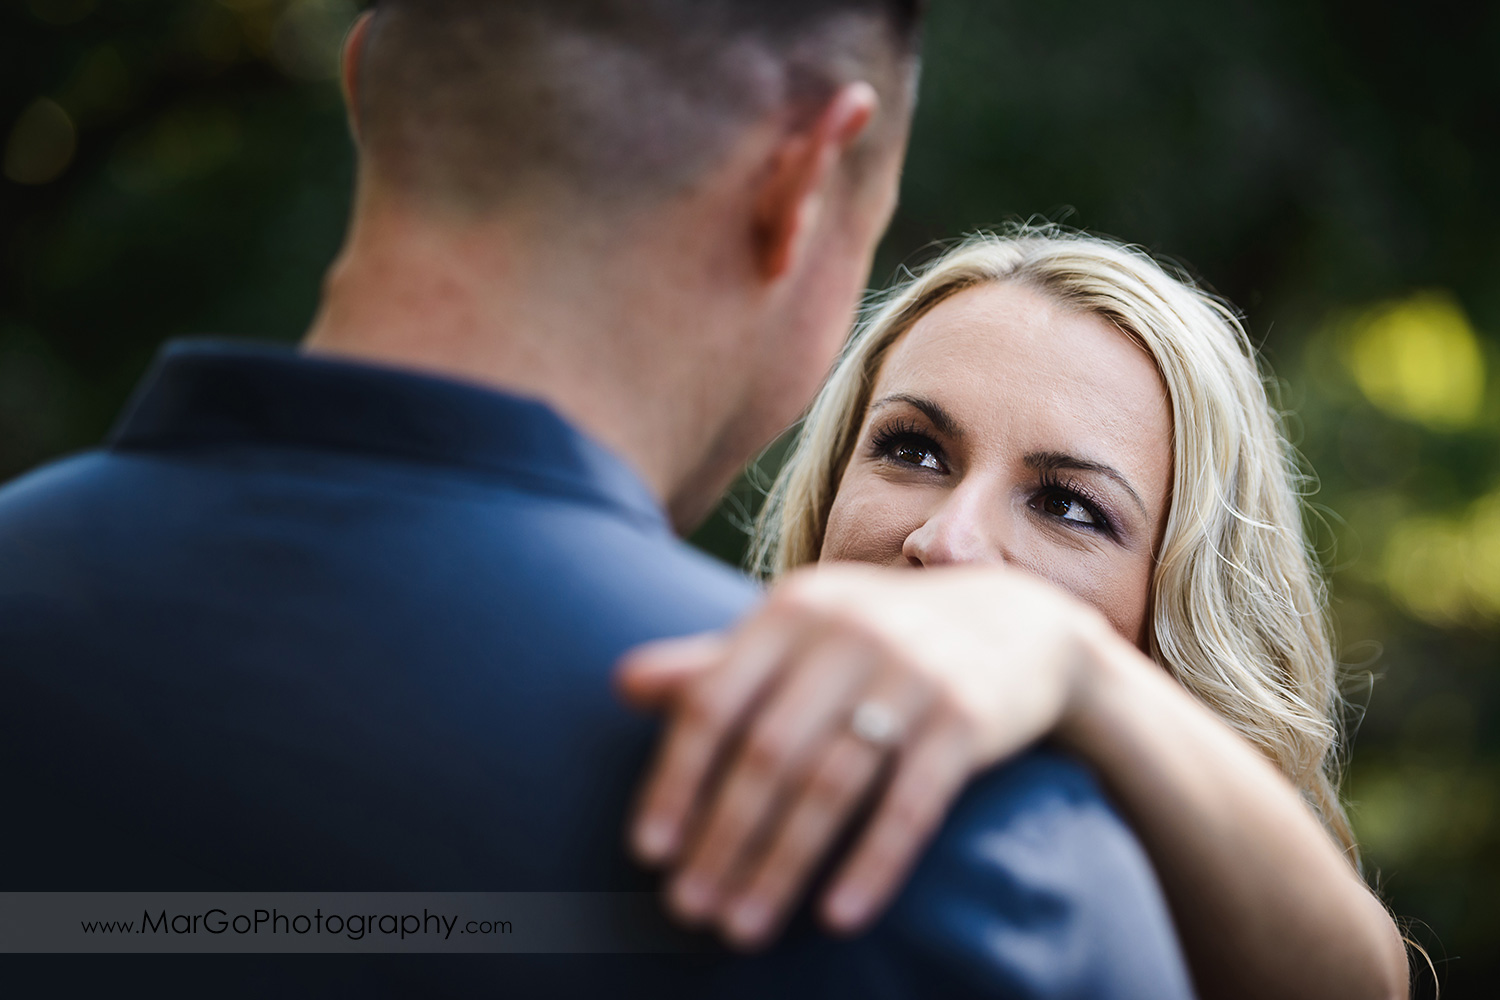 portrait of woman holding hand on arm of man in navy blue shirt during engagement session at San Francisco Golden Gate Park